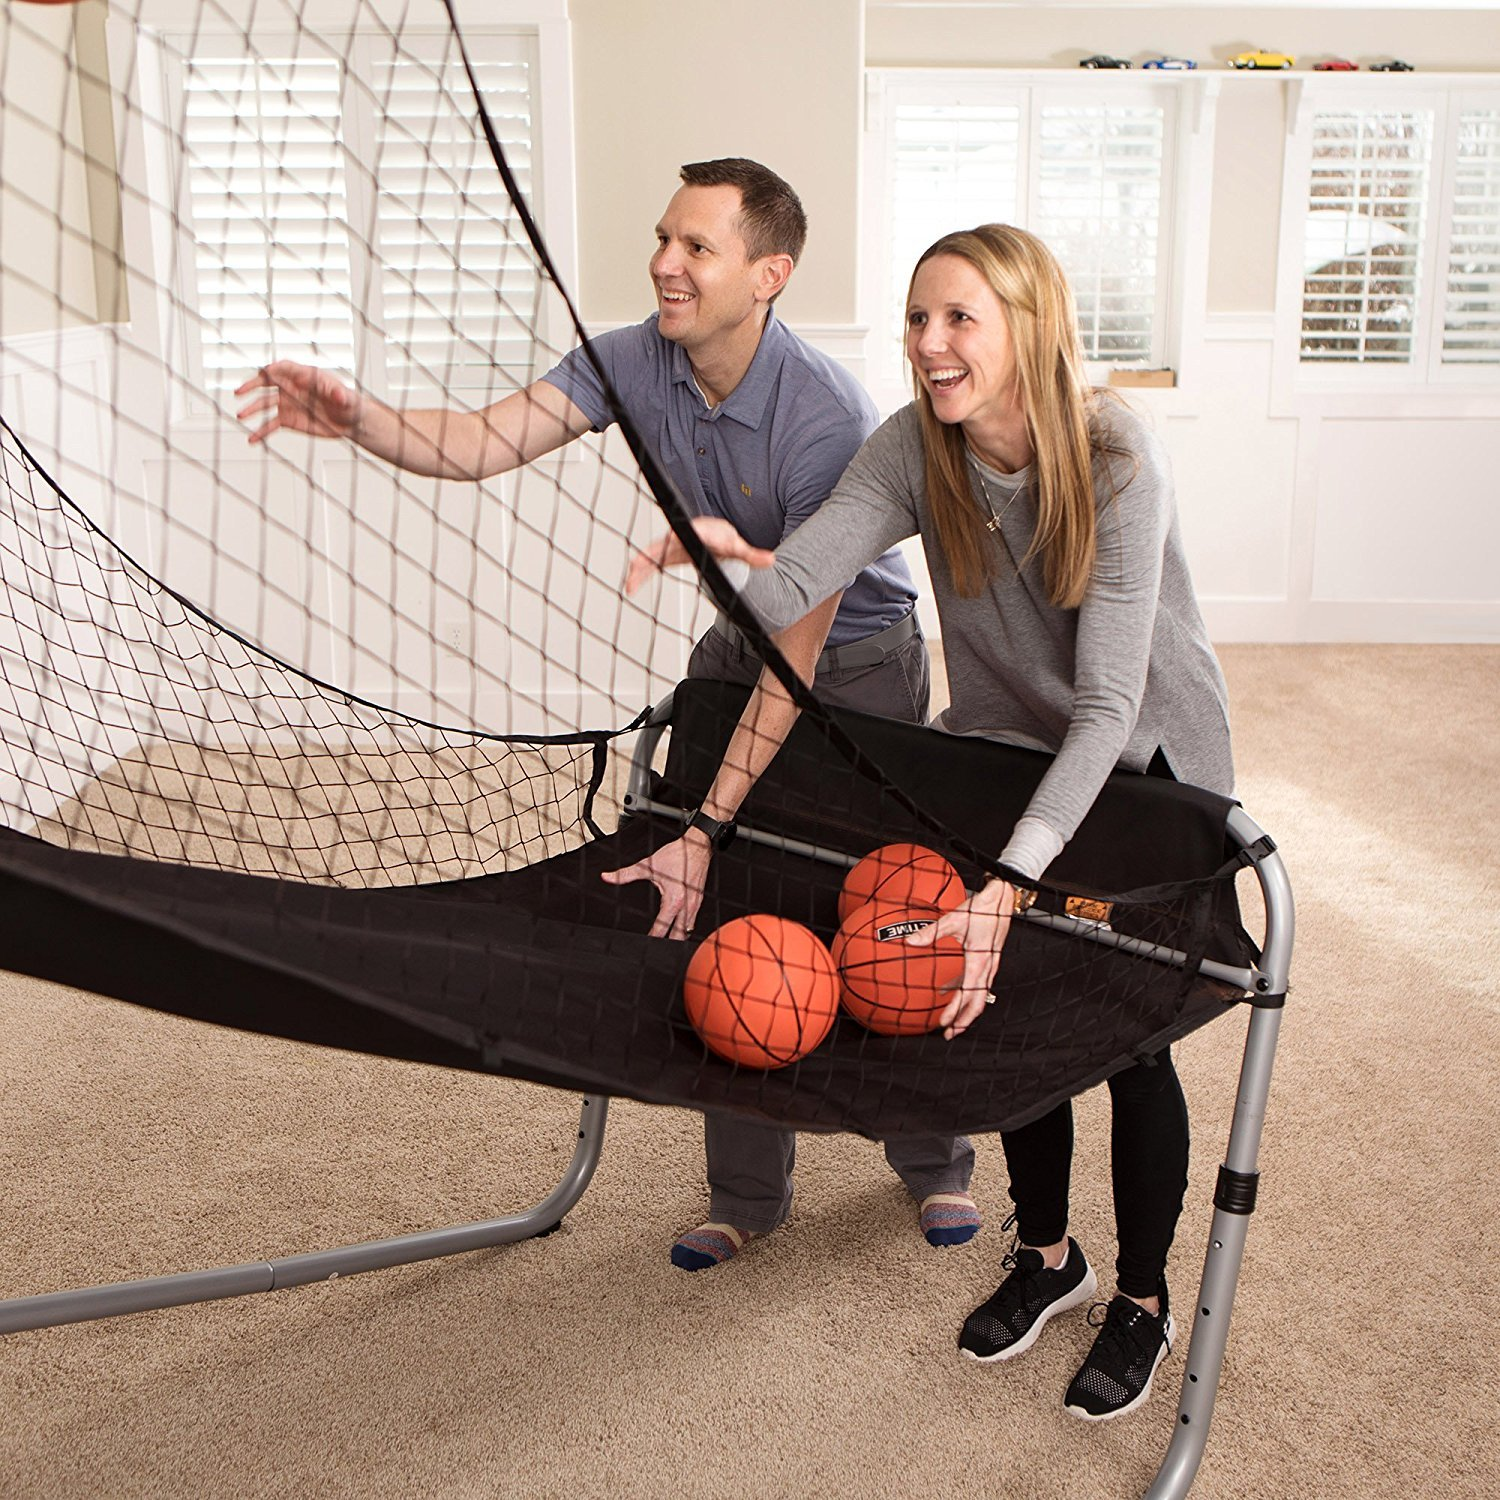 Sportcraft SIR00733 Quick Set-Up Basketball Arcade 8 Game Modes, 2-Players, Setup Less Than 10 Mins, No Tools Required, Heavy Duty 1'' Steel Tube by Sportcraft (Image #9)